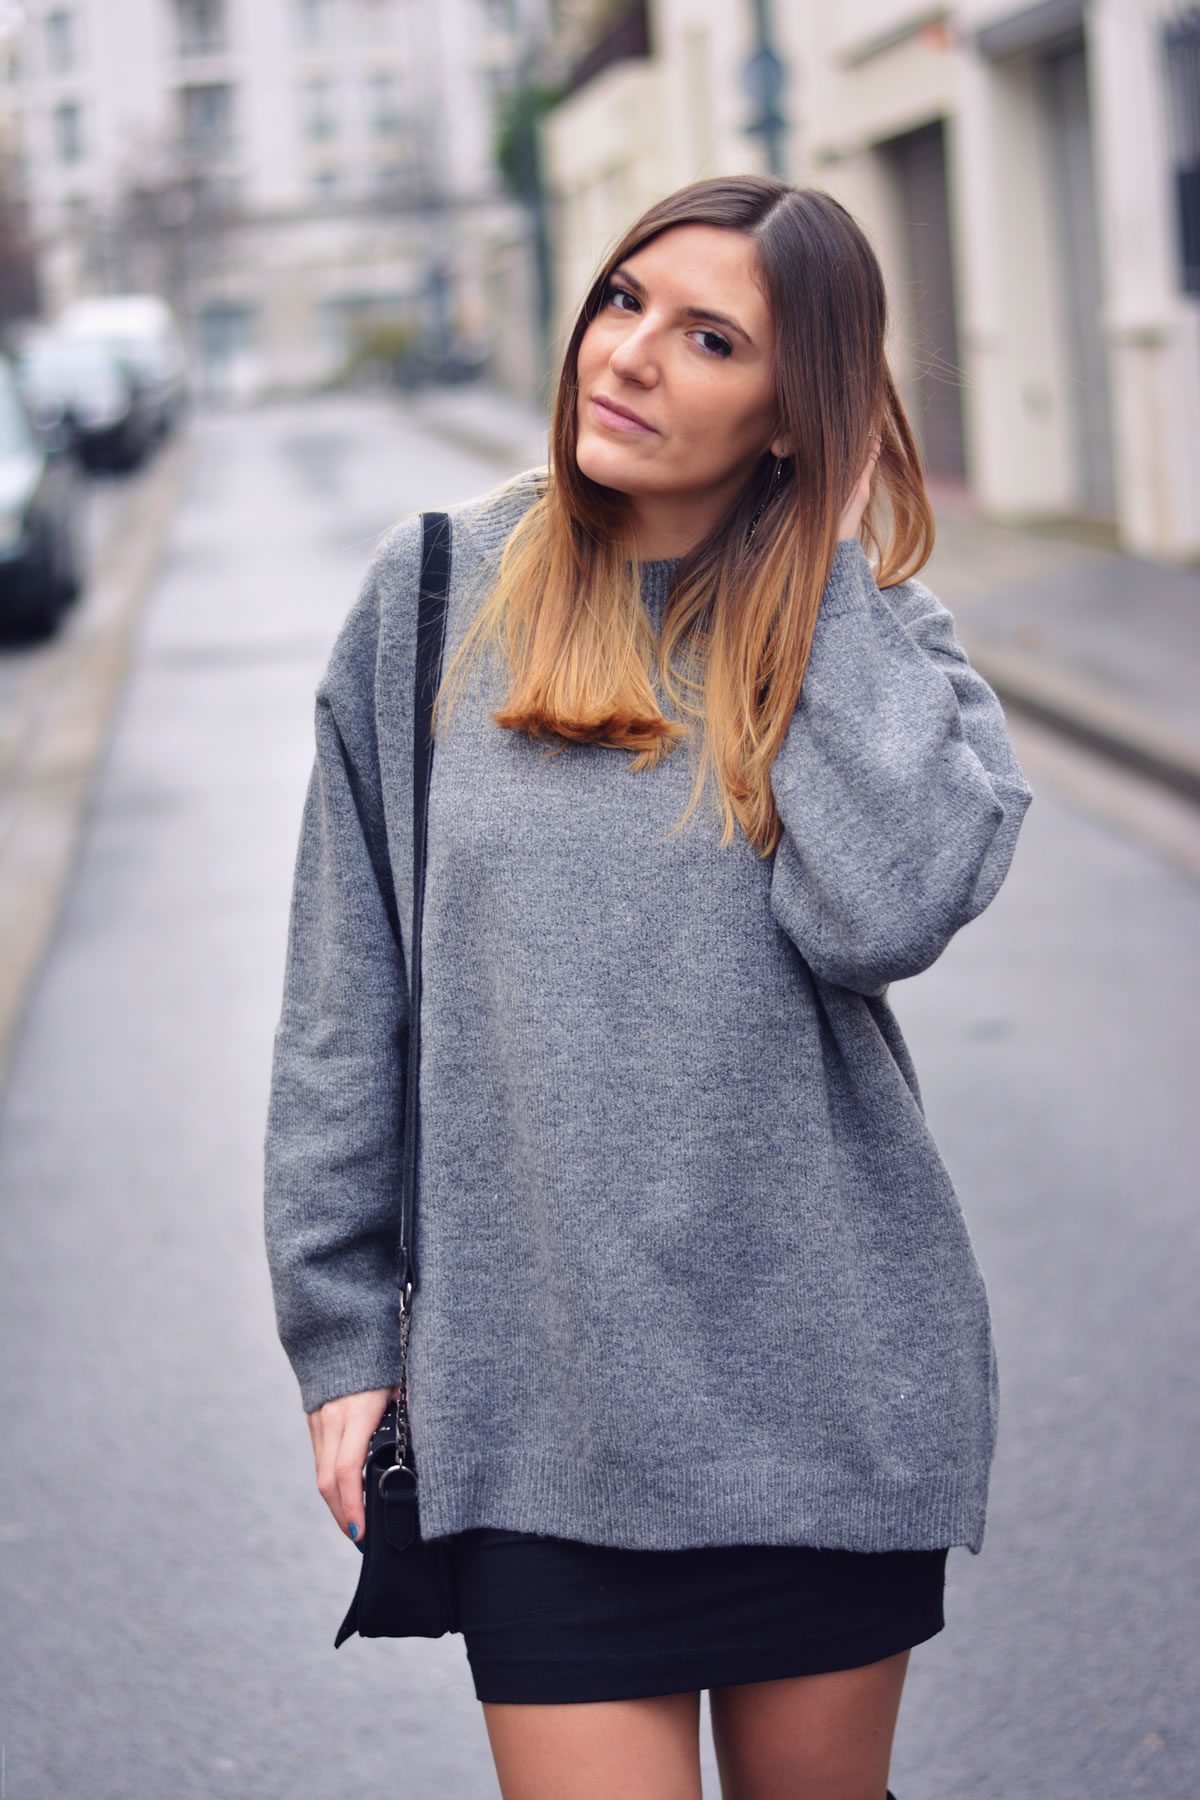 comment porter le pull extra large